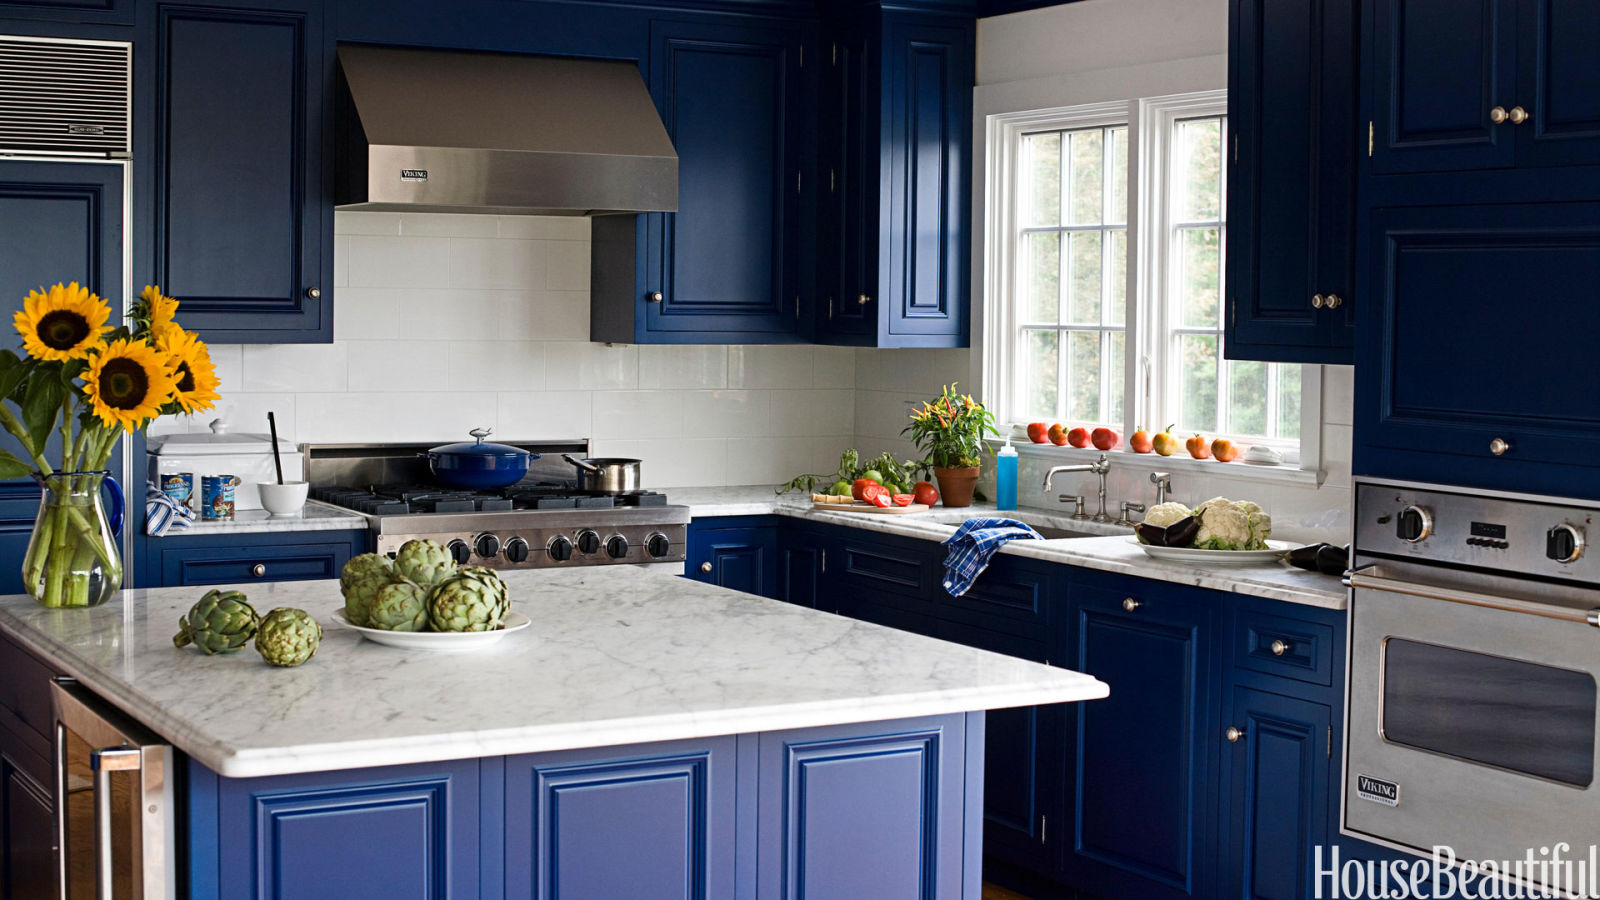 Painted Kitchen Cabinet Ideas 20+ best kitchen paint colors - ideas for popular kitchen colors